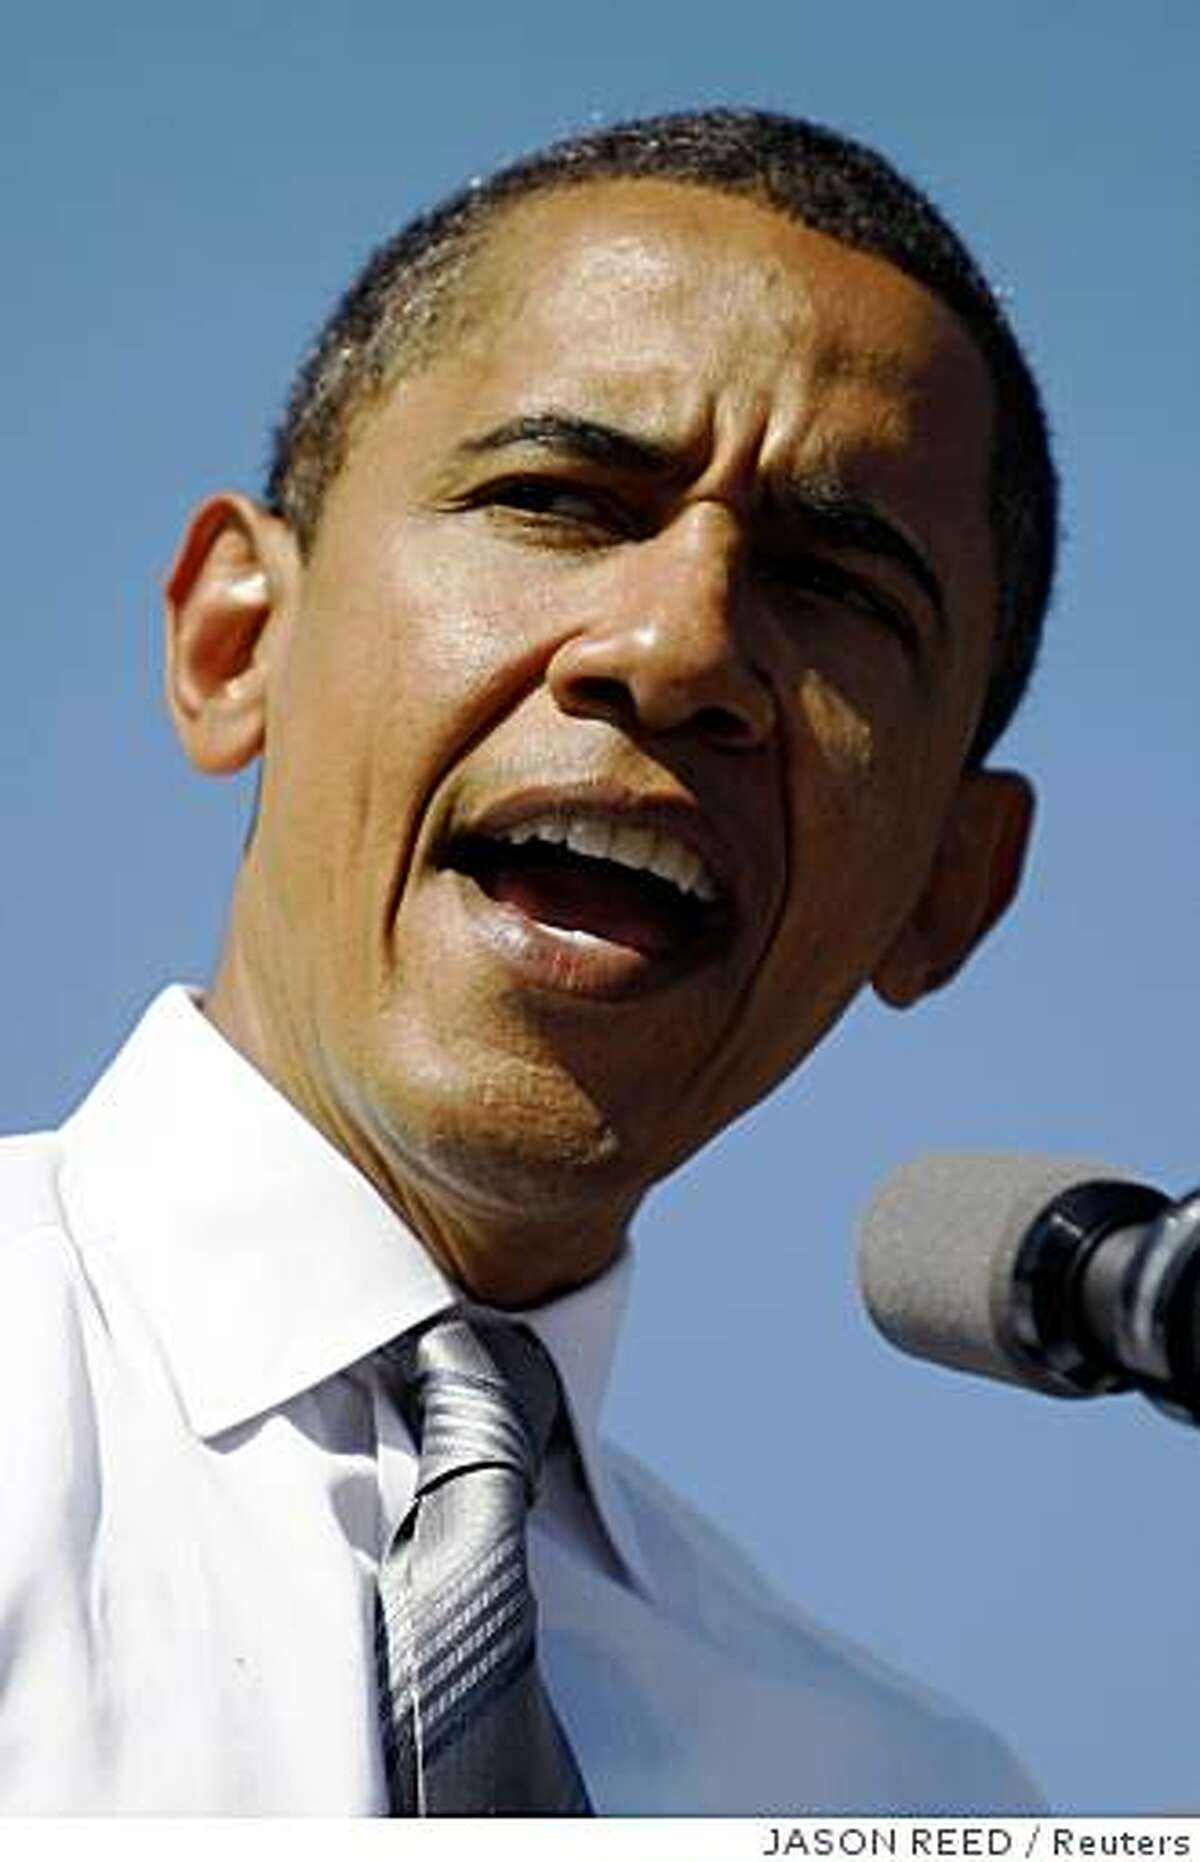 U.S. Democratic presidential nominee Senator Barack Obama (D-IL) speaks during a campaign rally in Asheville, North Carolina, October 5, 2008.